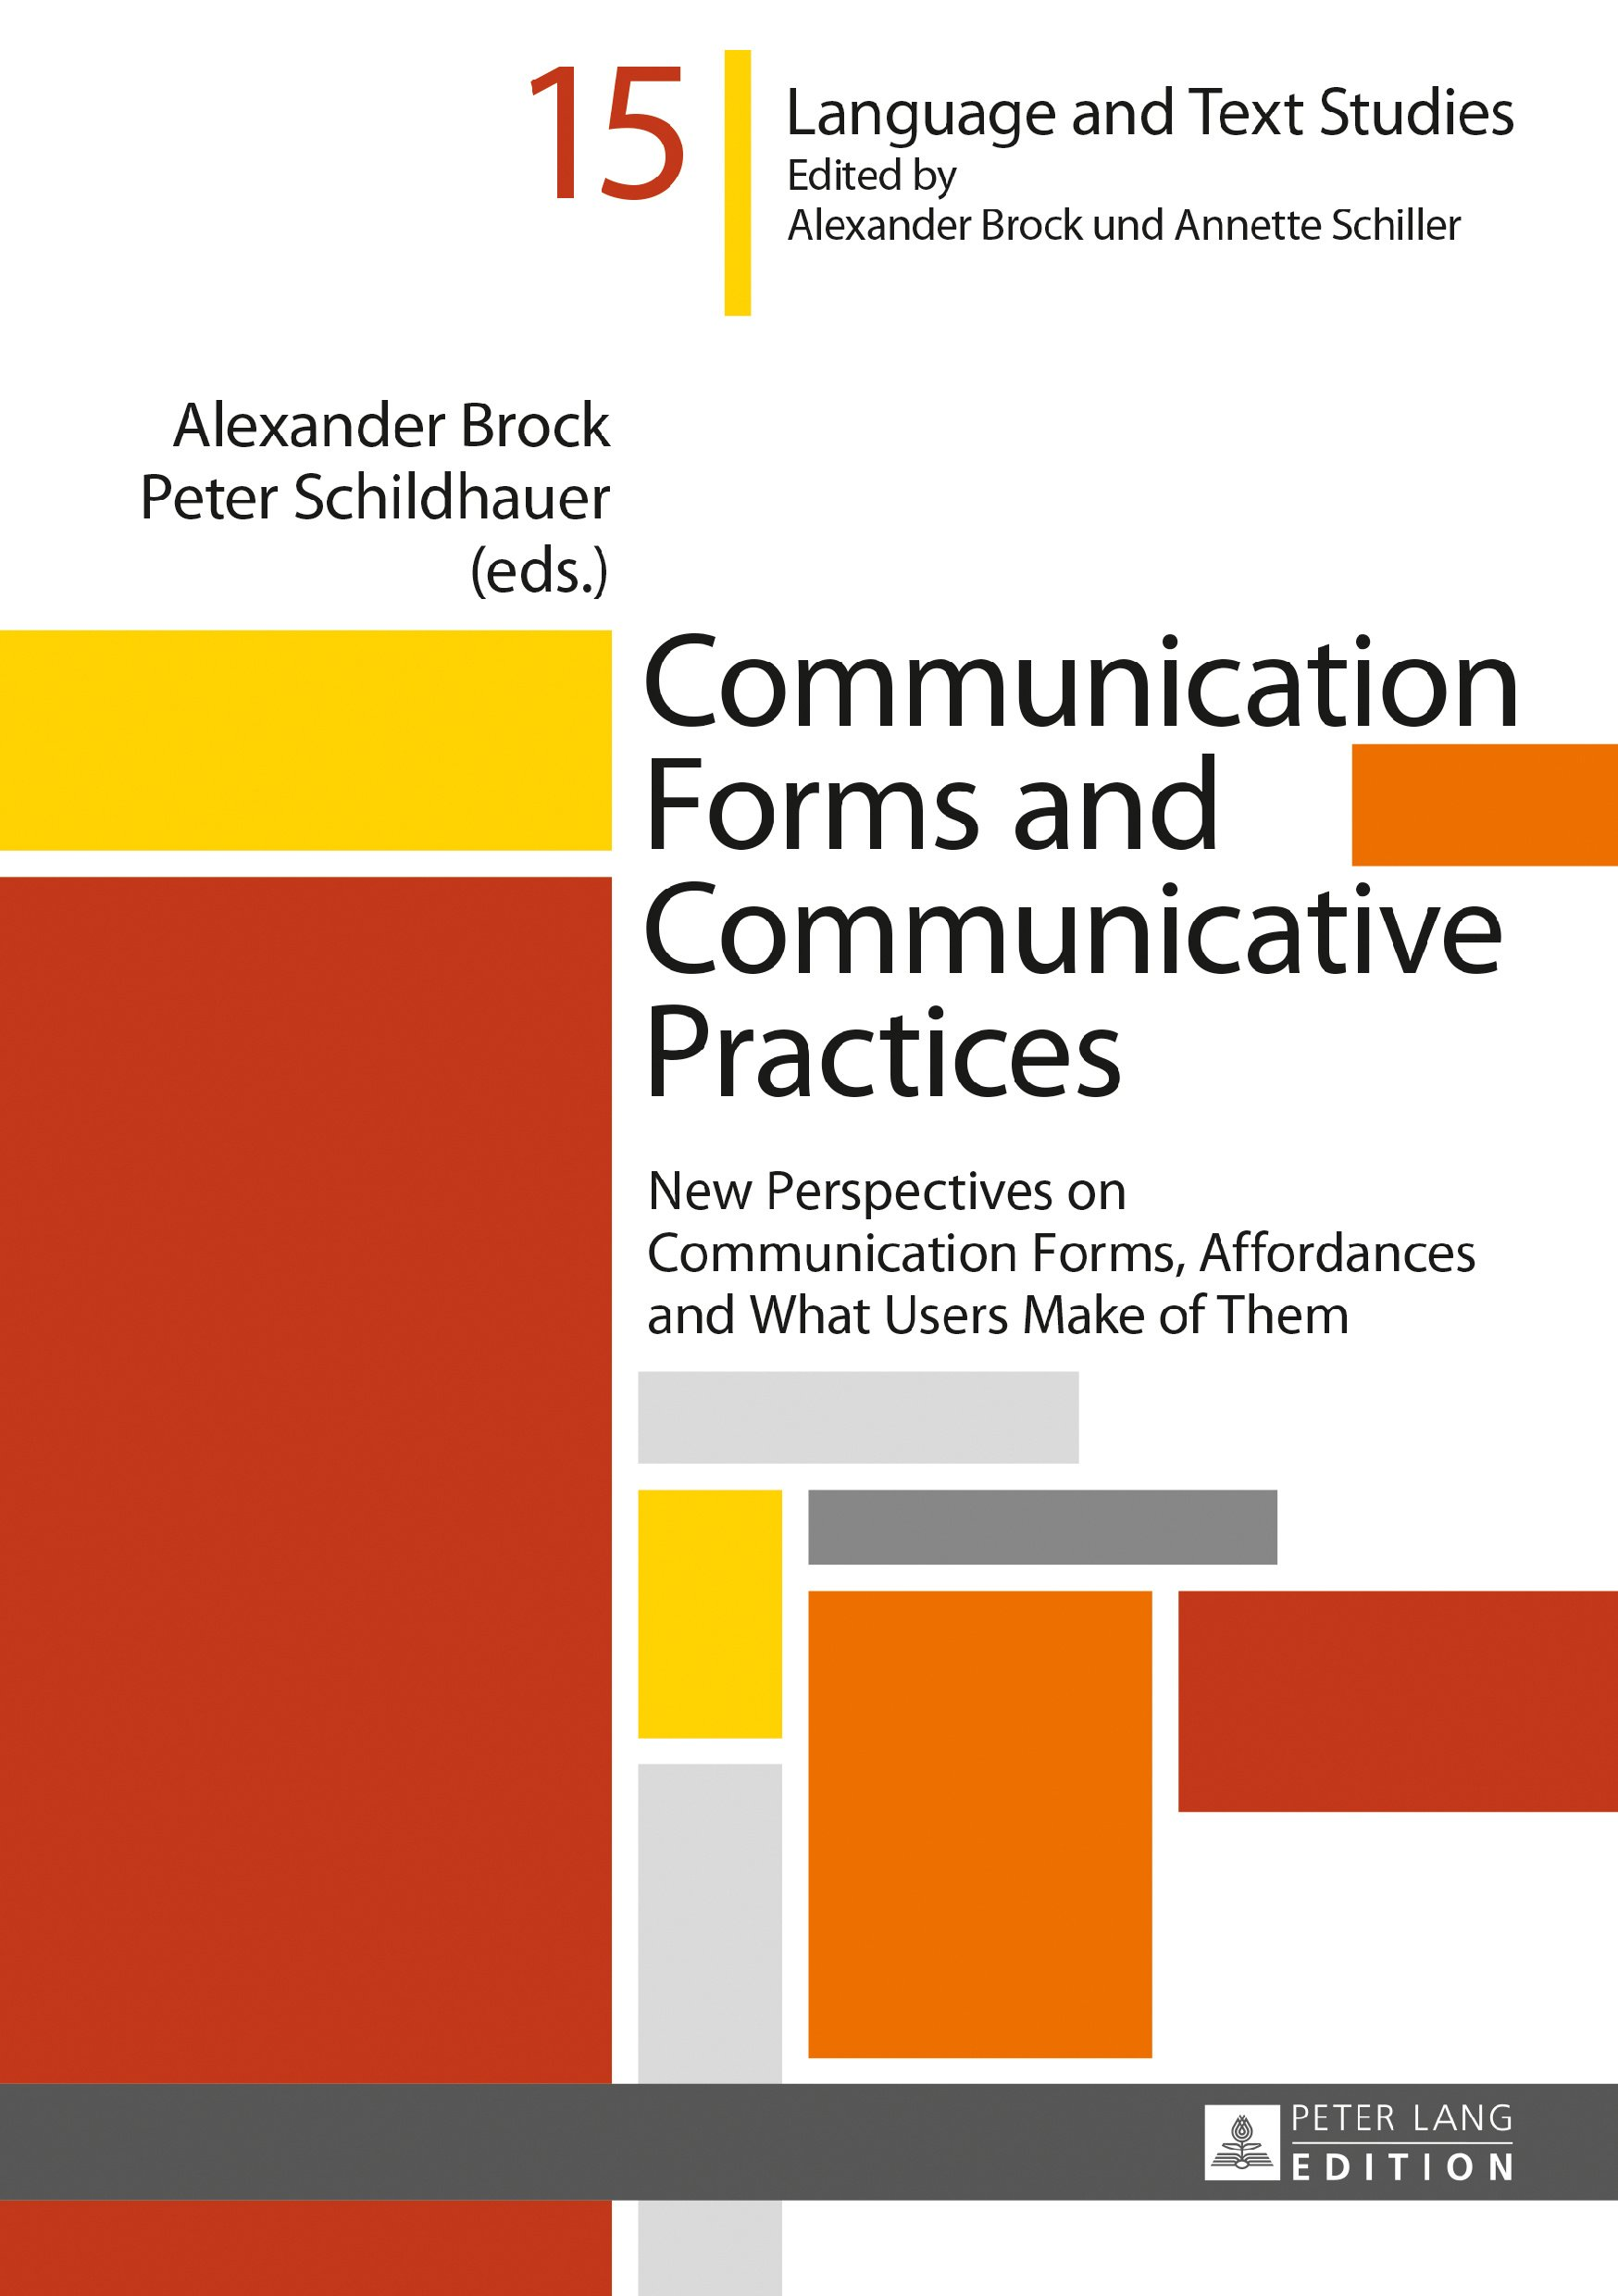 Communication Forms and Communicative Practices: New Perspectives on Communication Forms, Affordances and What Users Make of Them (Hallesche Sprach- ... / Recherches linguistiques et textuelles) by Peter Lang GmbH, Internationaler Verlag der Wissenschaften